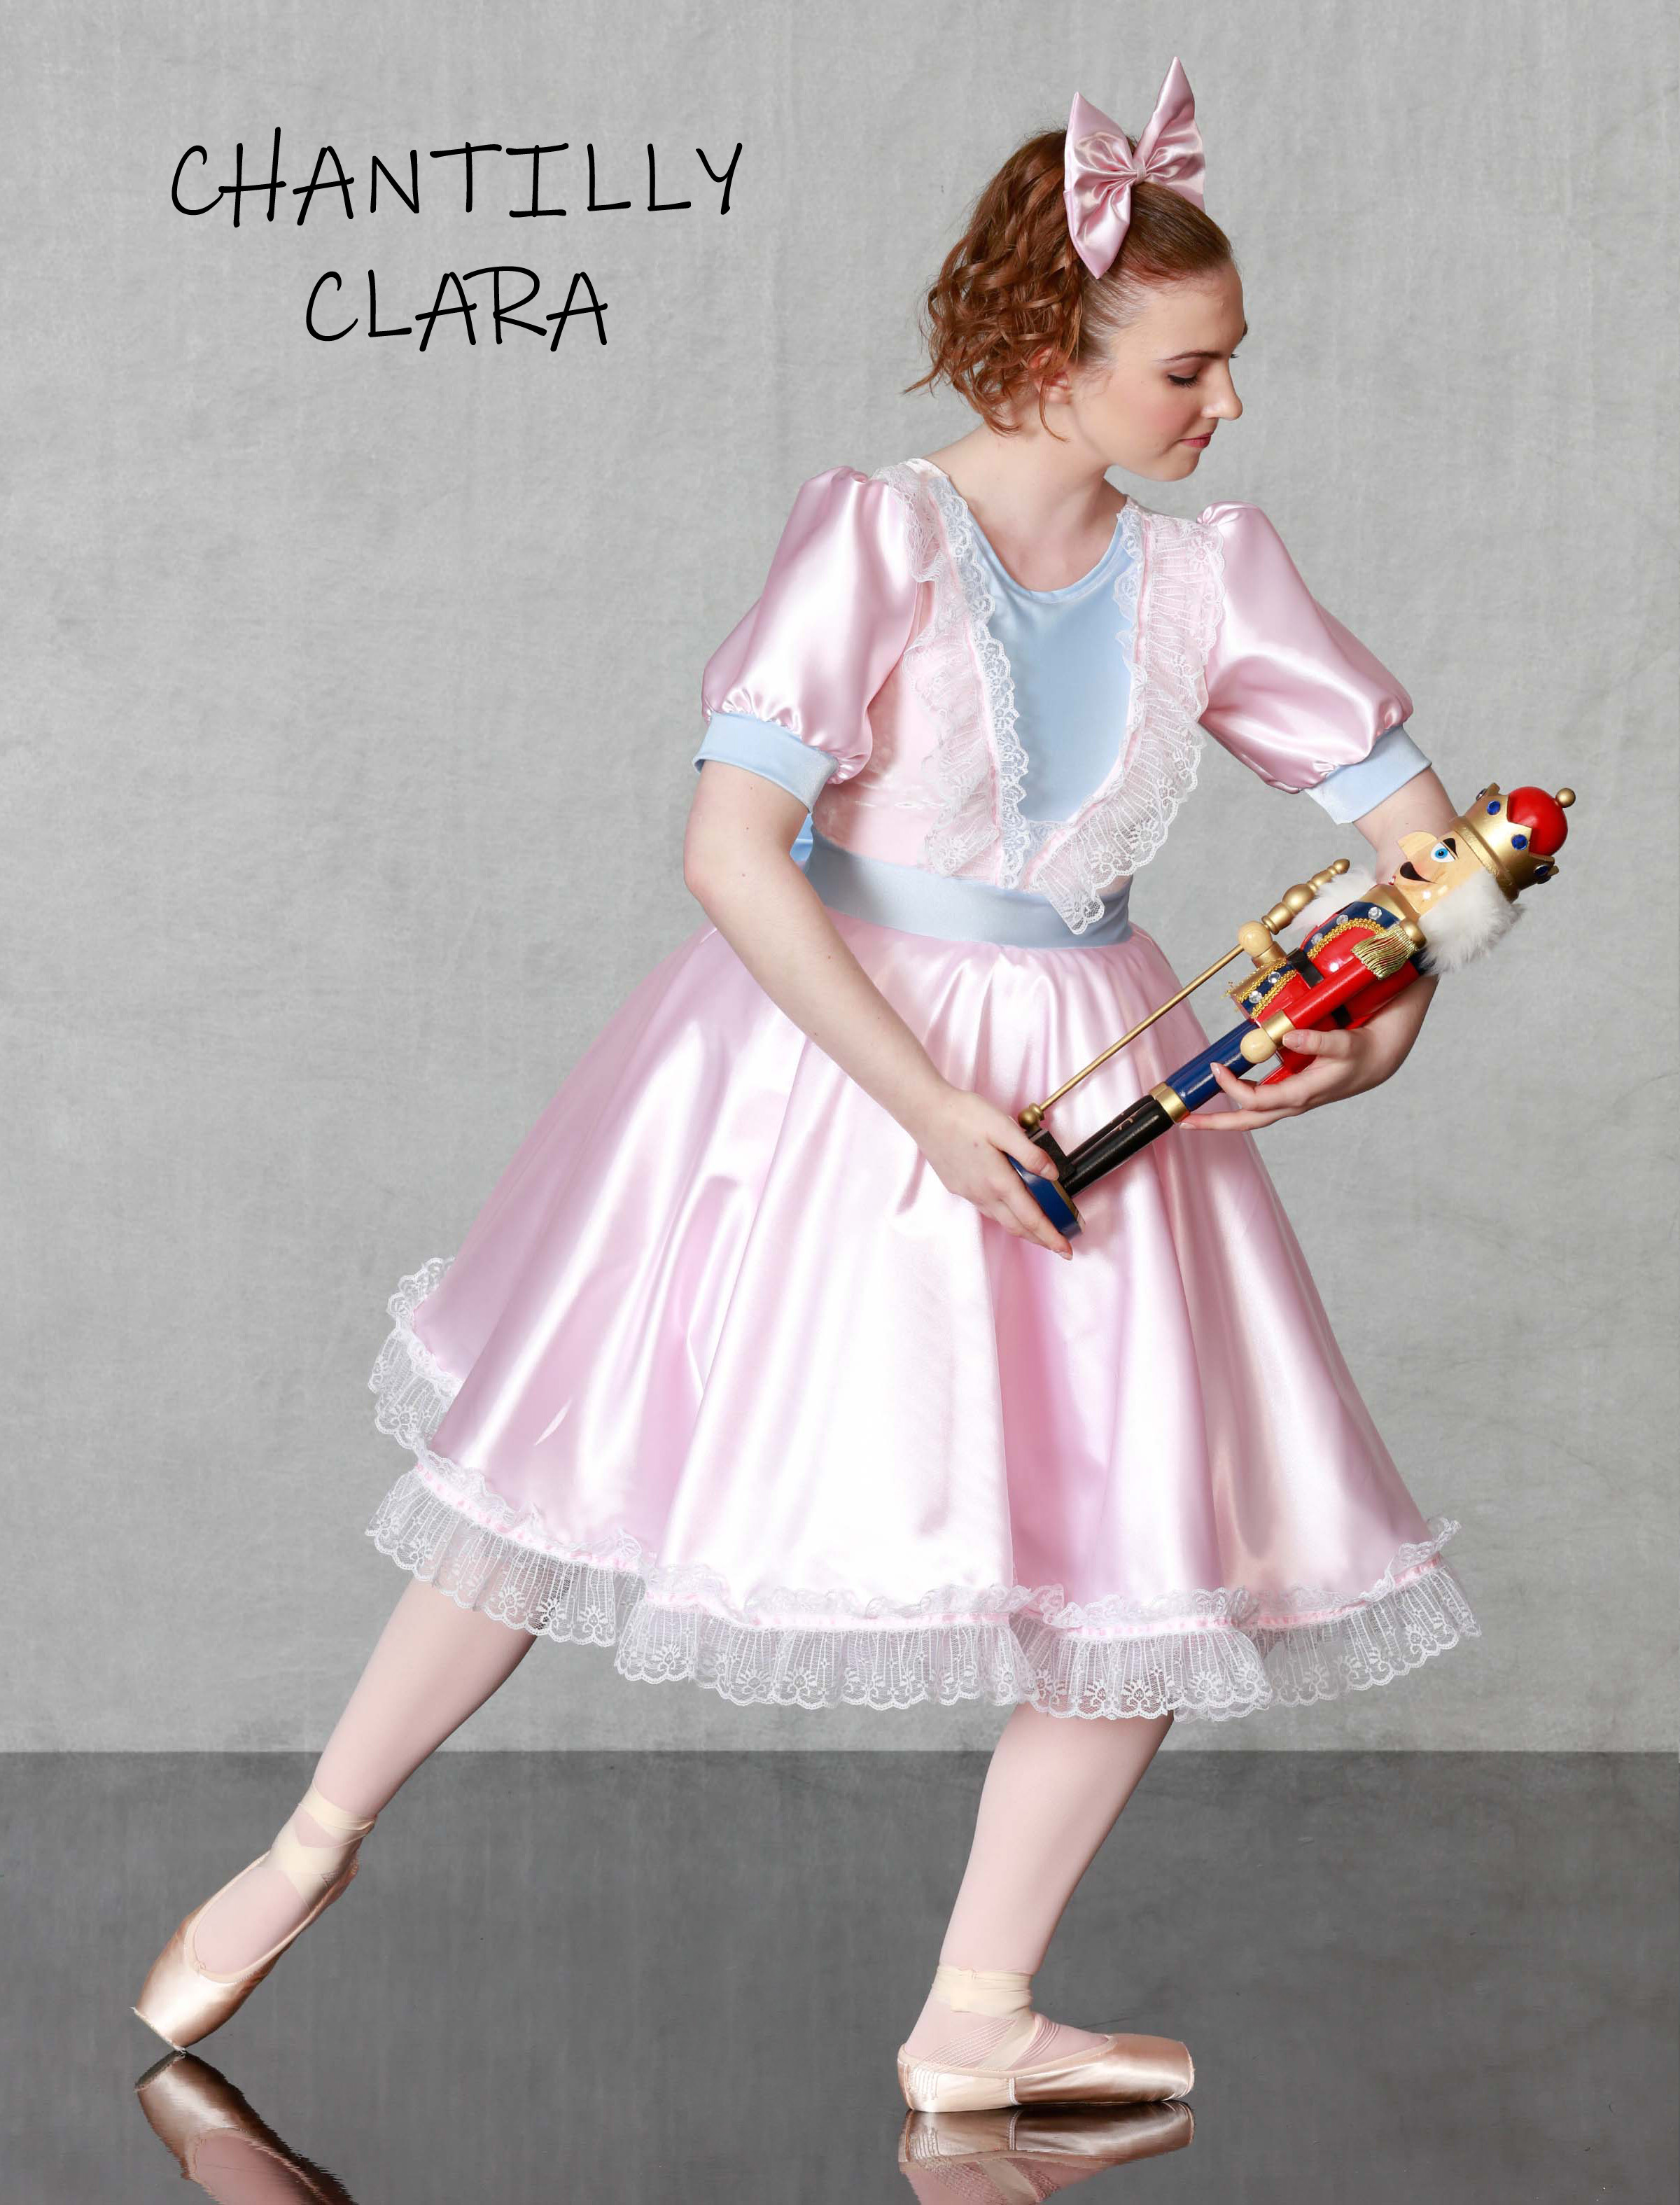 NUTCRACKER CHANTILLY CLARA